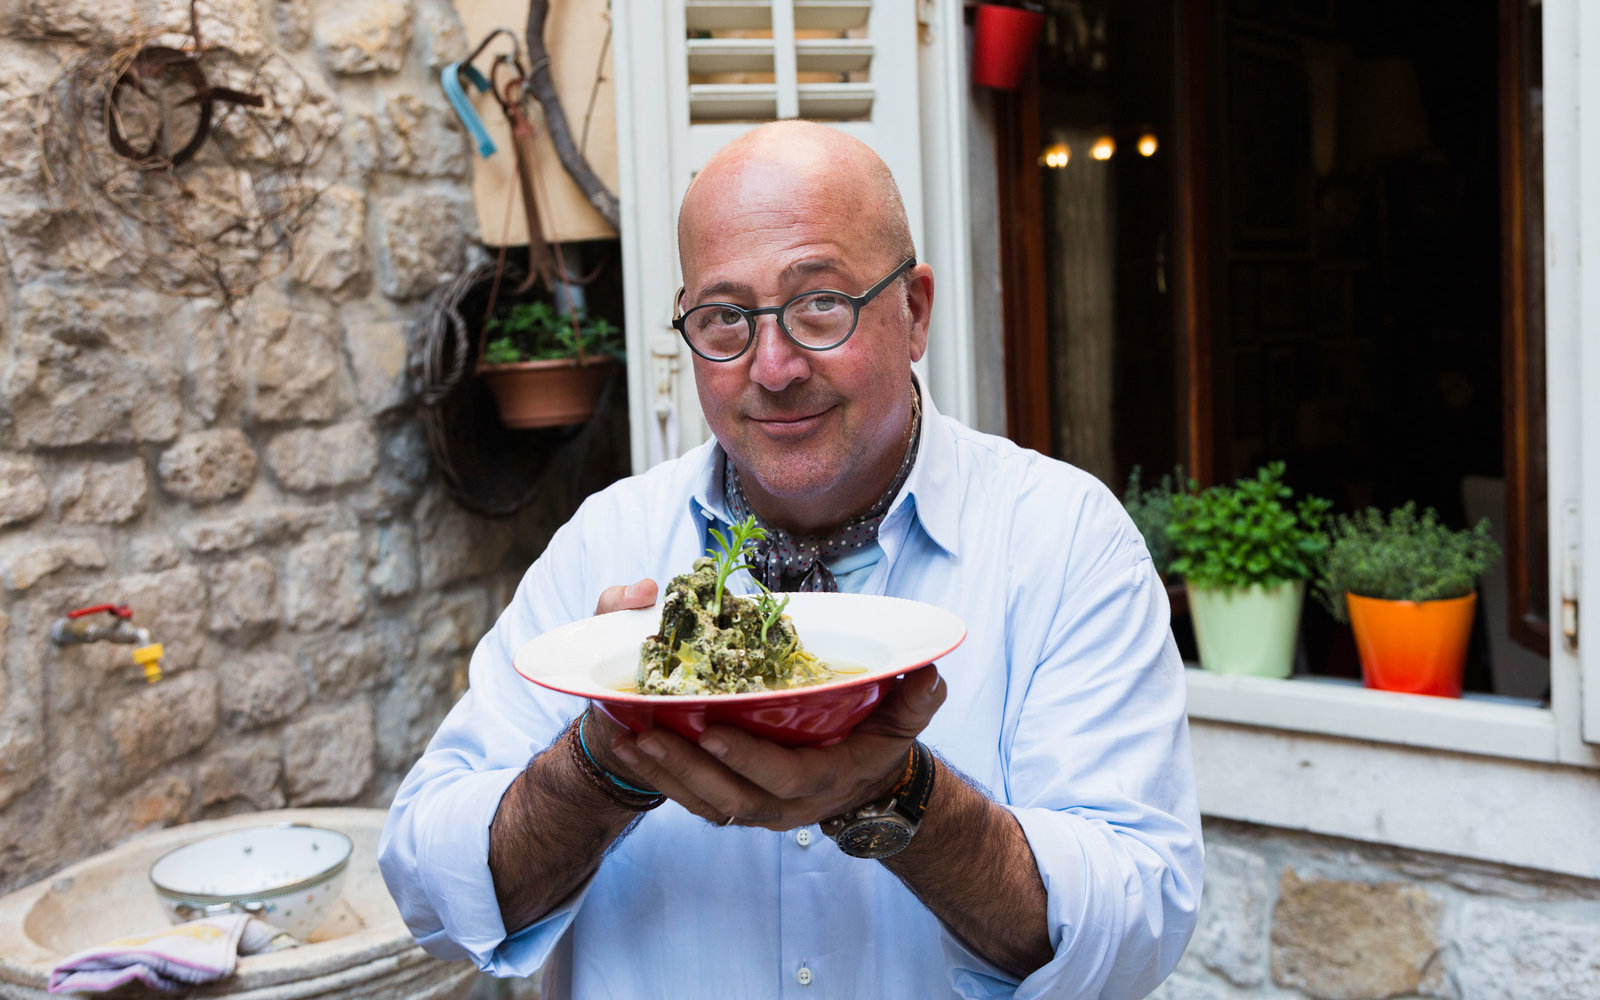 Andrew Zimmern's Favorite Places to Eat in Rio